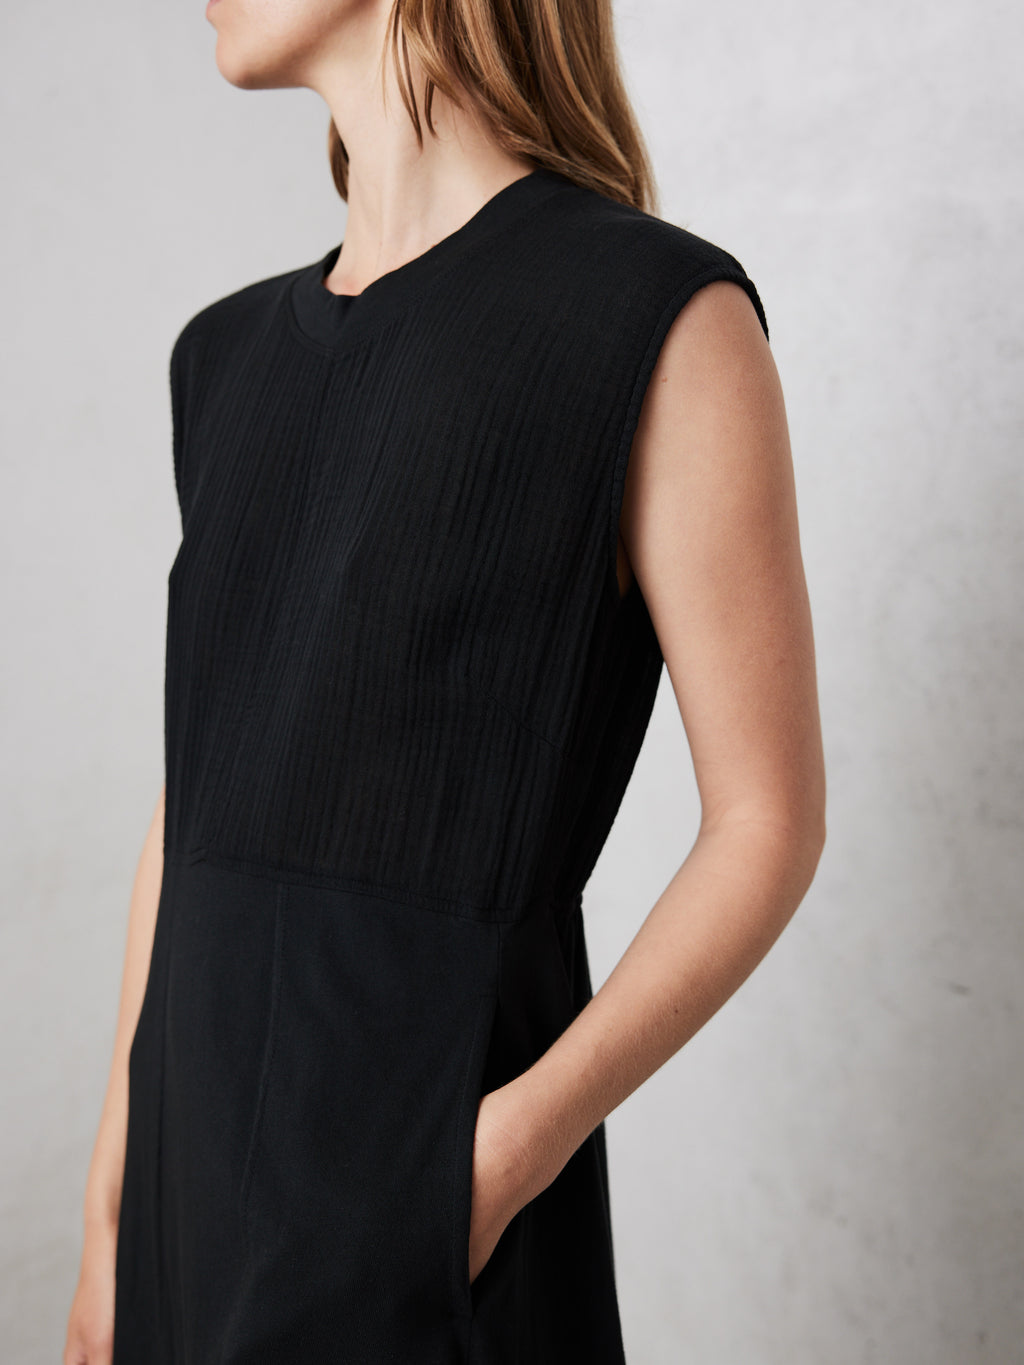 Black Gauze Jersey Medley Meadow Dress